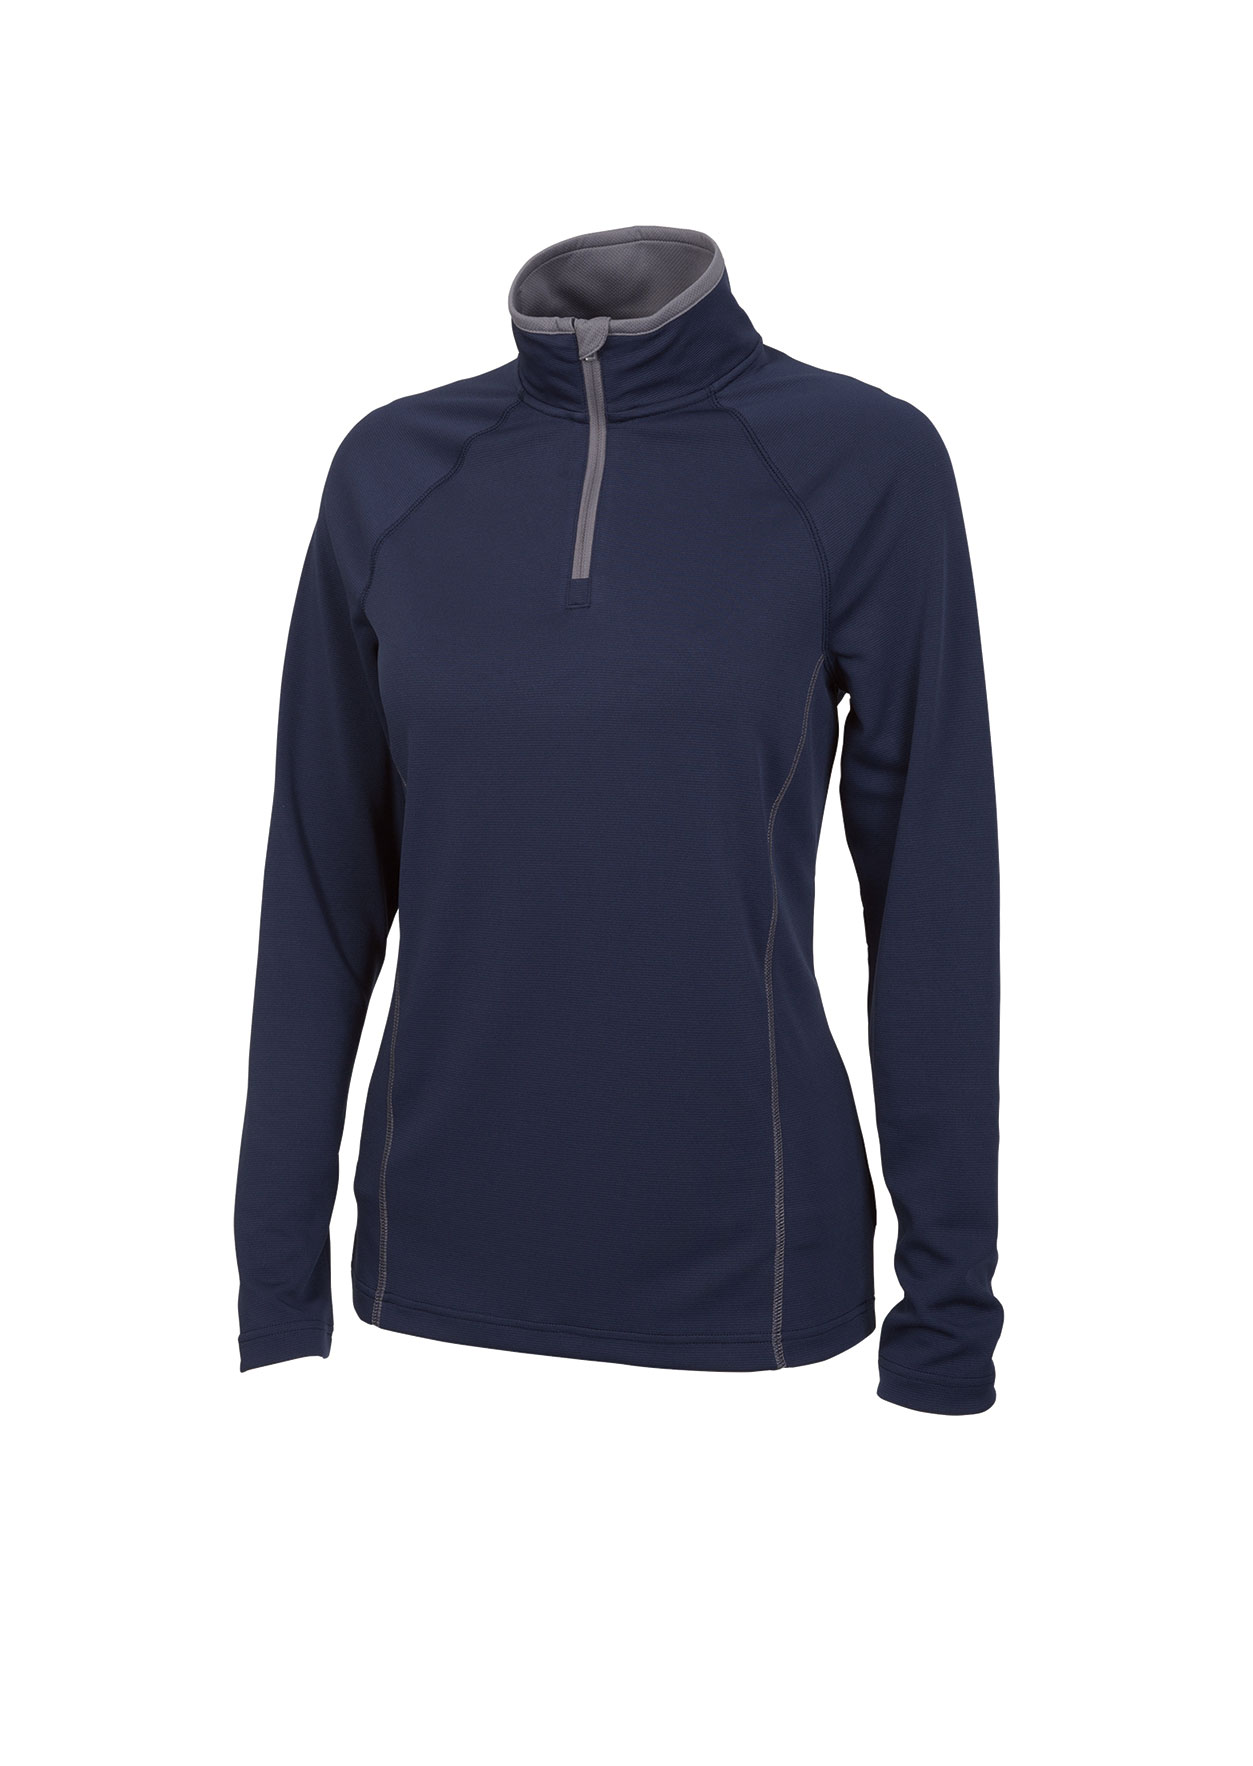 Womens Fusion Pullover by Charles River